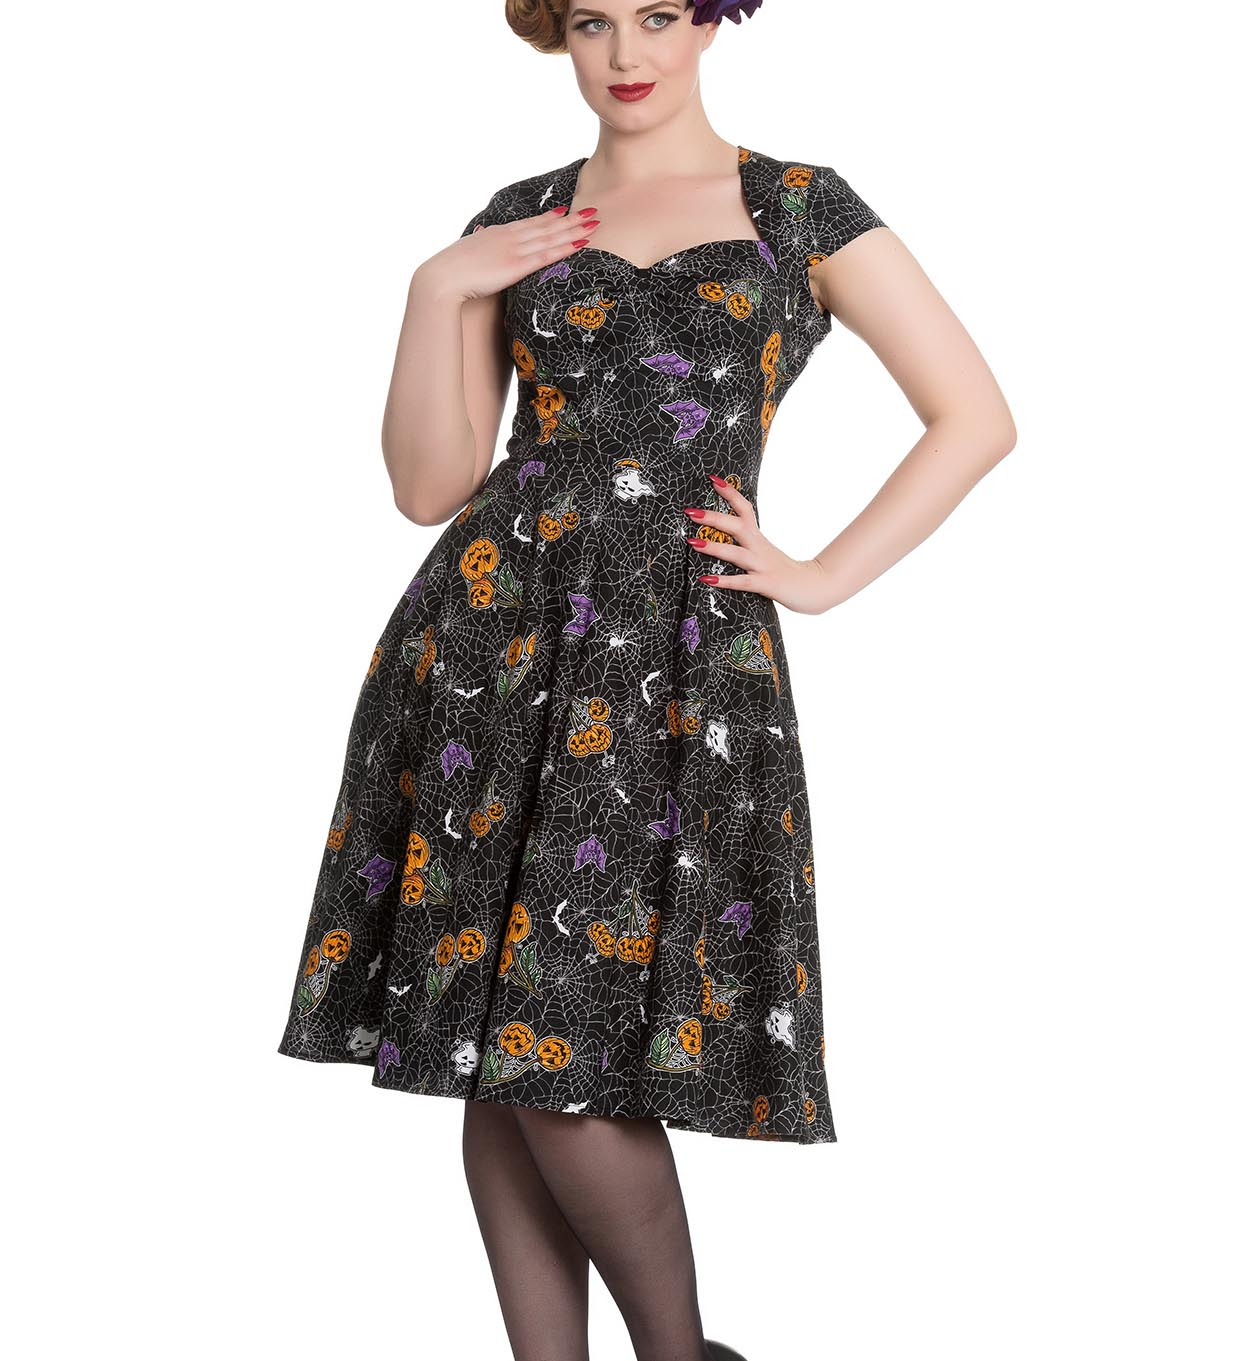 Hell-Bunny-Black-Pinup-50s-Goth-Webs-Dress-HARLOW-Halloween-All-Sizes thumbnail 31